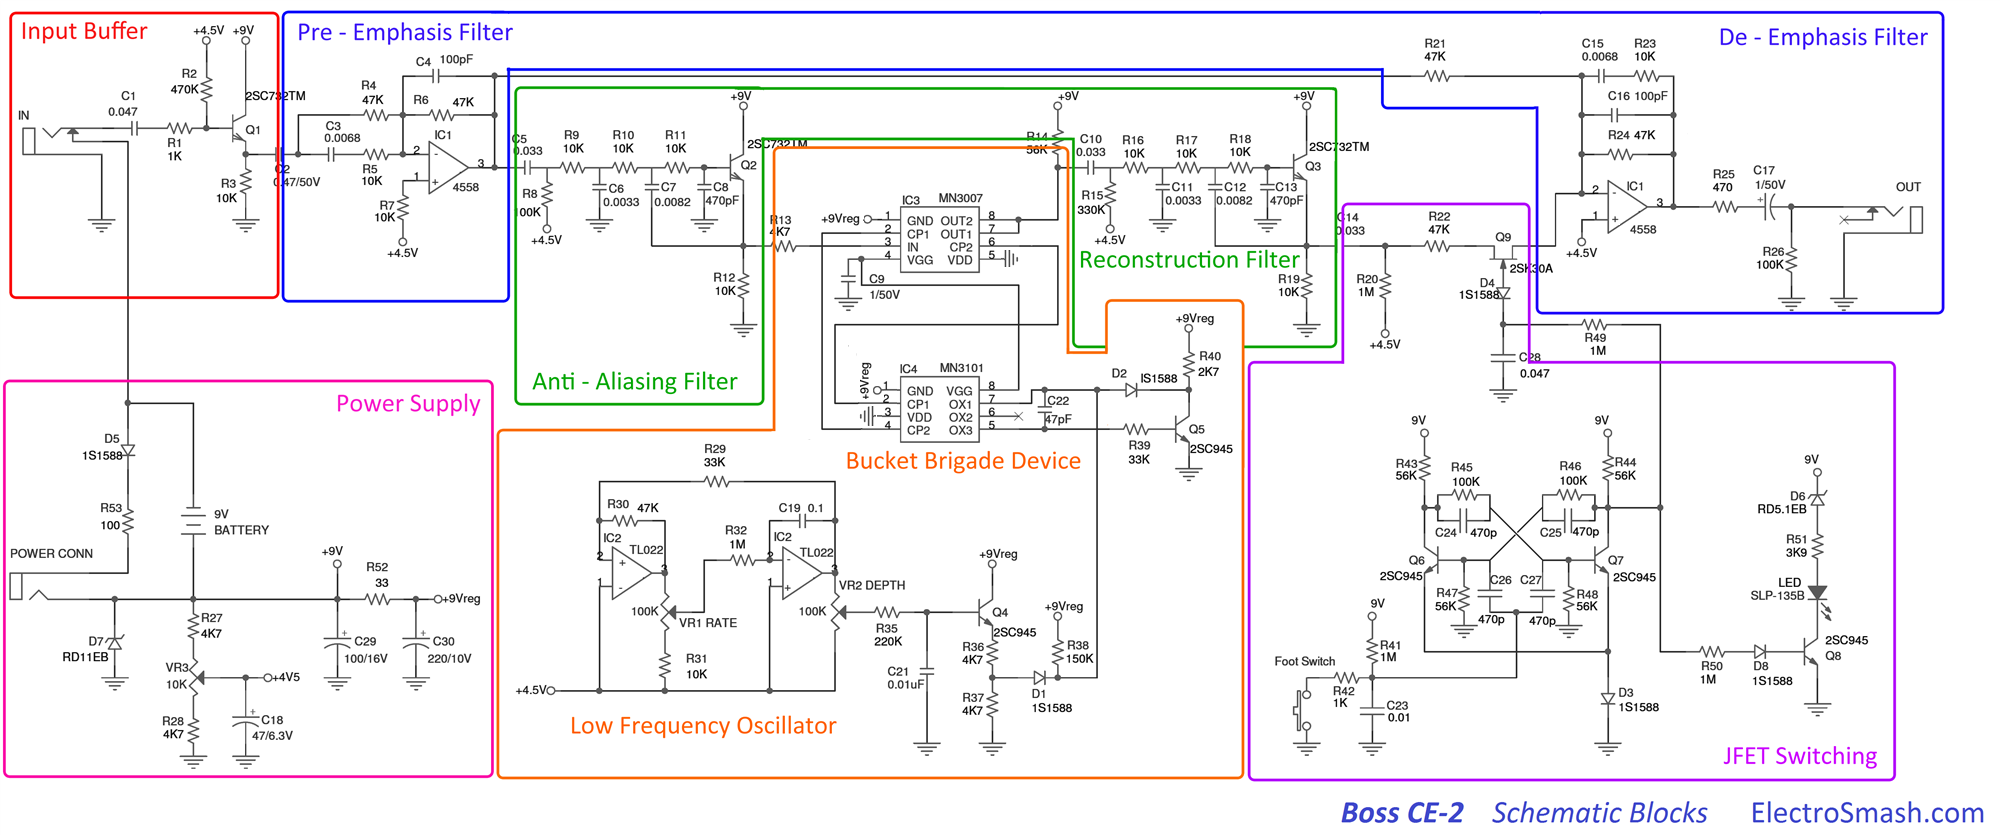 Wiring The Wired Pir Motion Detector furthermore Victron Multiplus Inverter Kit With Solar Controller moreover How Do Float Switches Work further UV Technical additionally Automatic Transfer Switch Ats. on dual switch wiring diagram